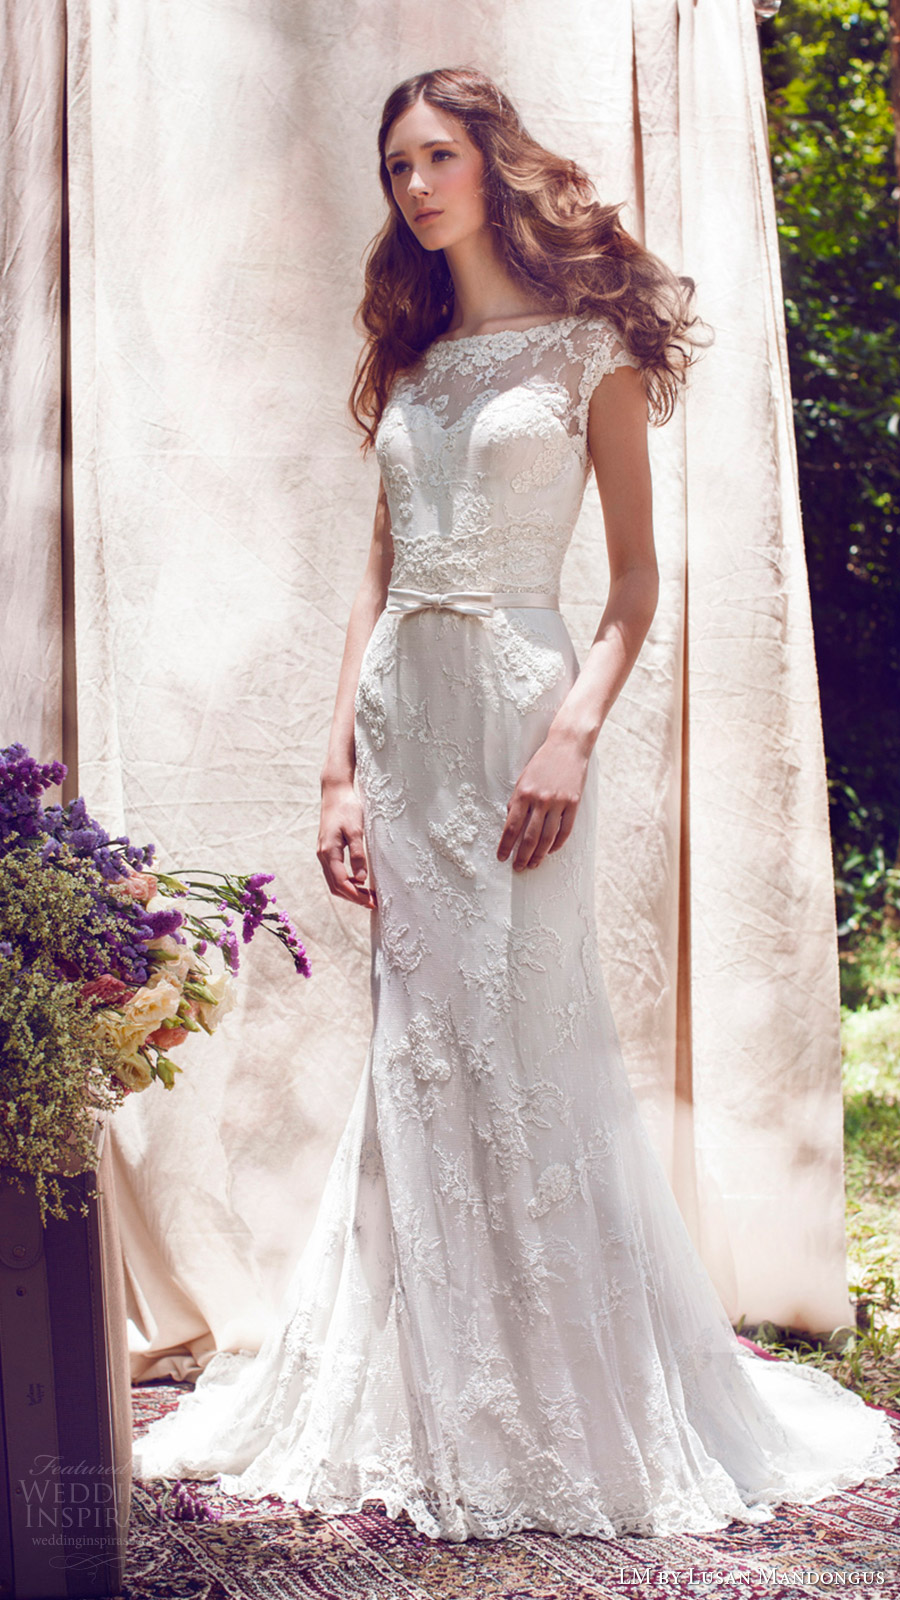 lm lusan mandongus bridal 2017 cap sleeve illusion bateau neck lace trumpet wedding dress (lm3024b) mv